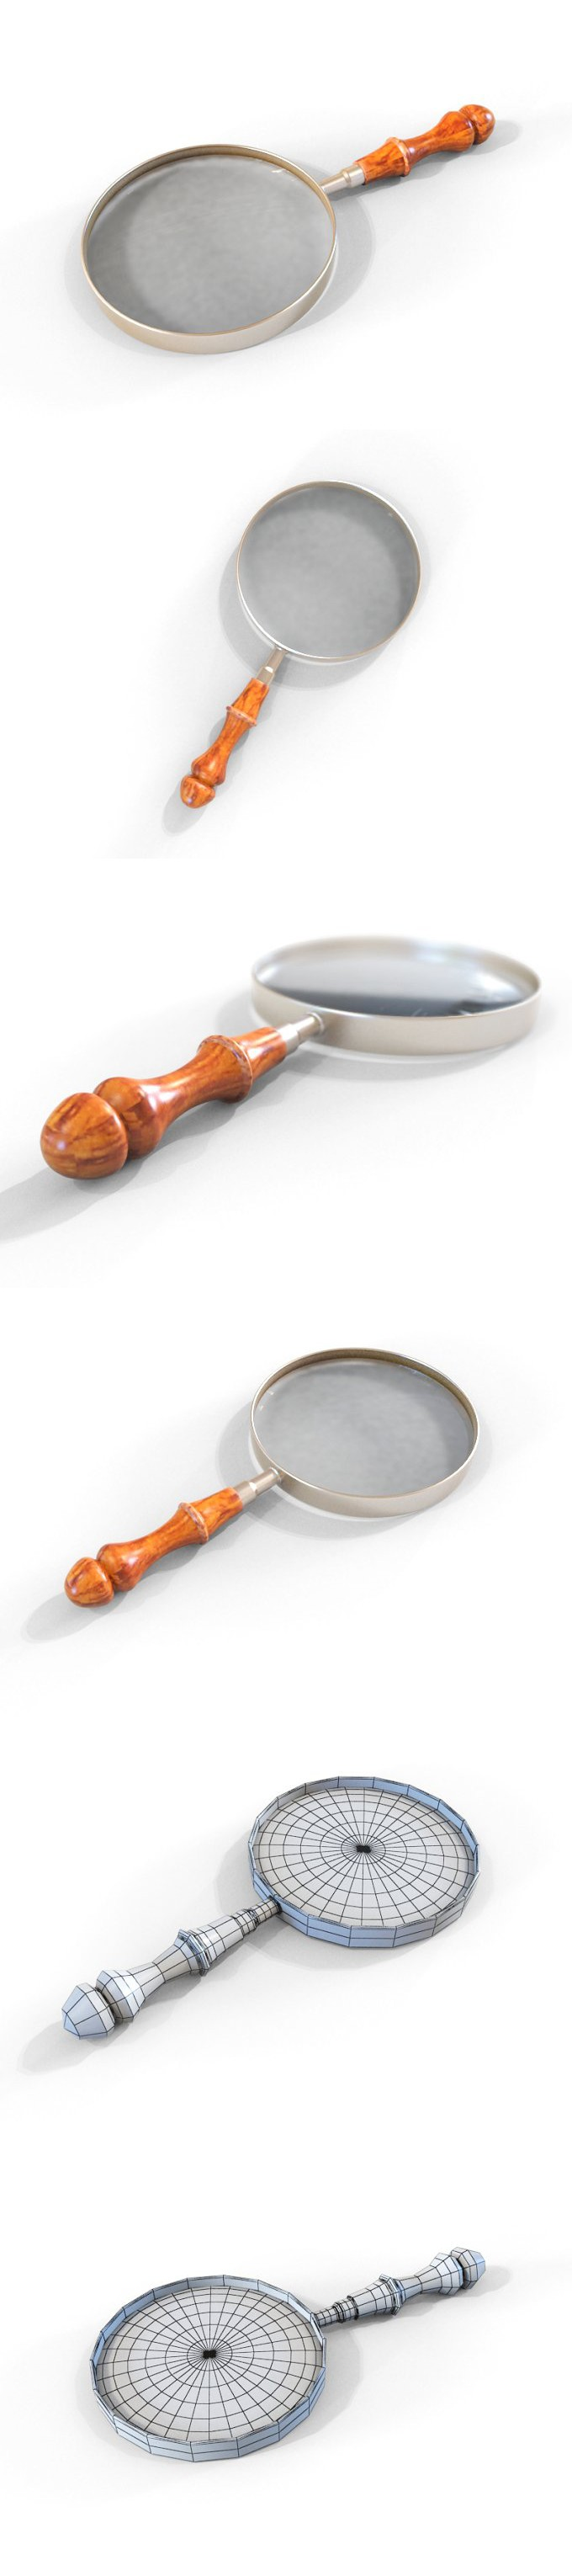 Magnifying Glass D Objects D Objects Pinterest Magnifying - Artist creates art power sunlight magnifying glass